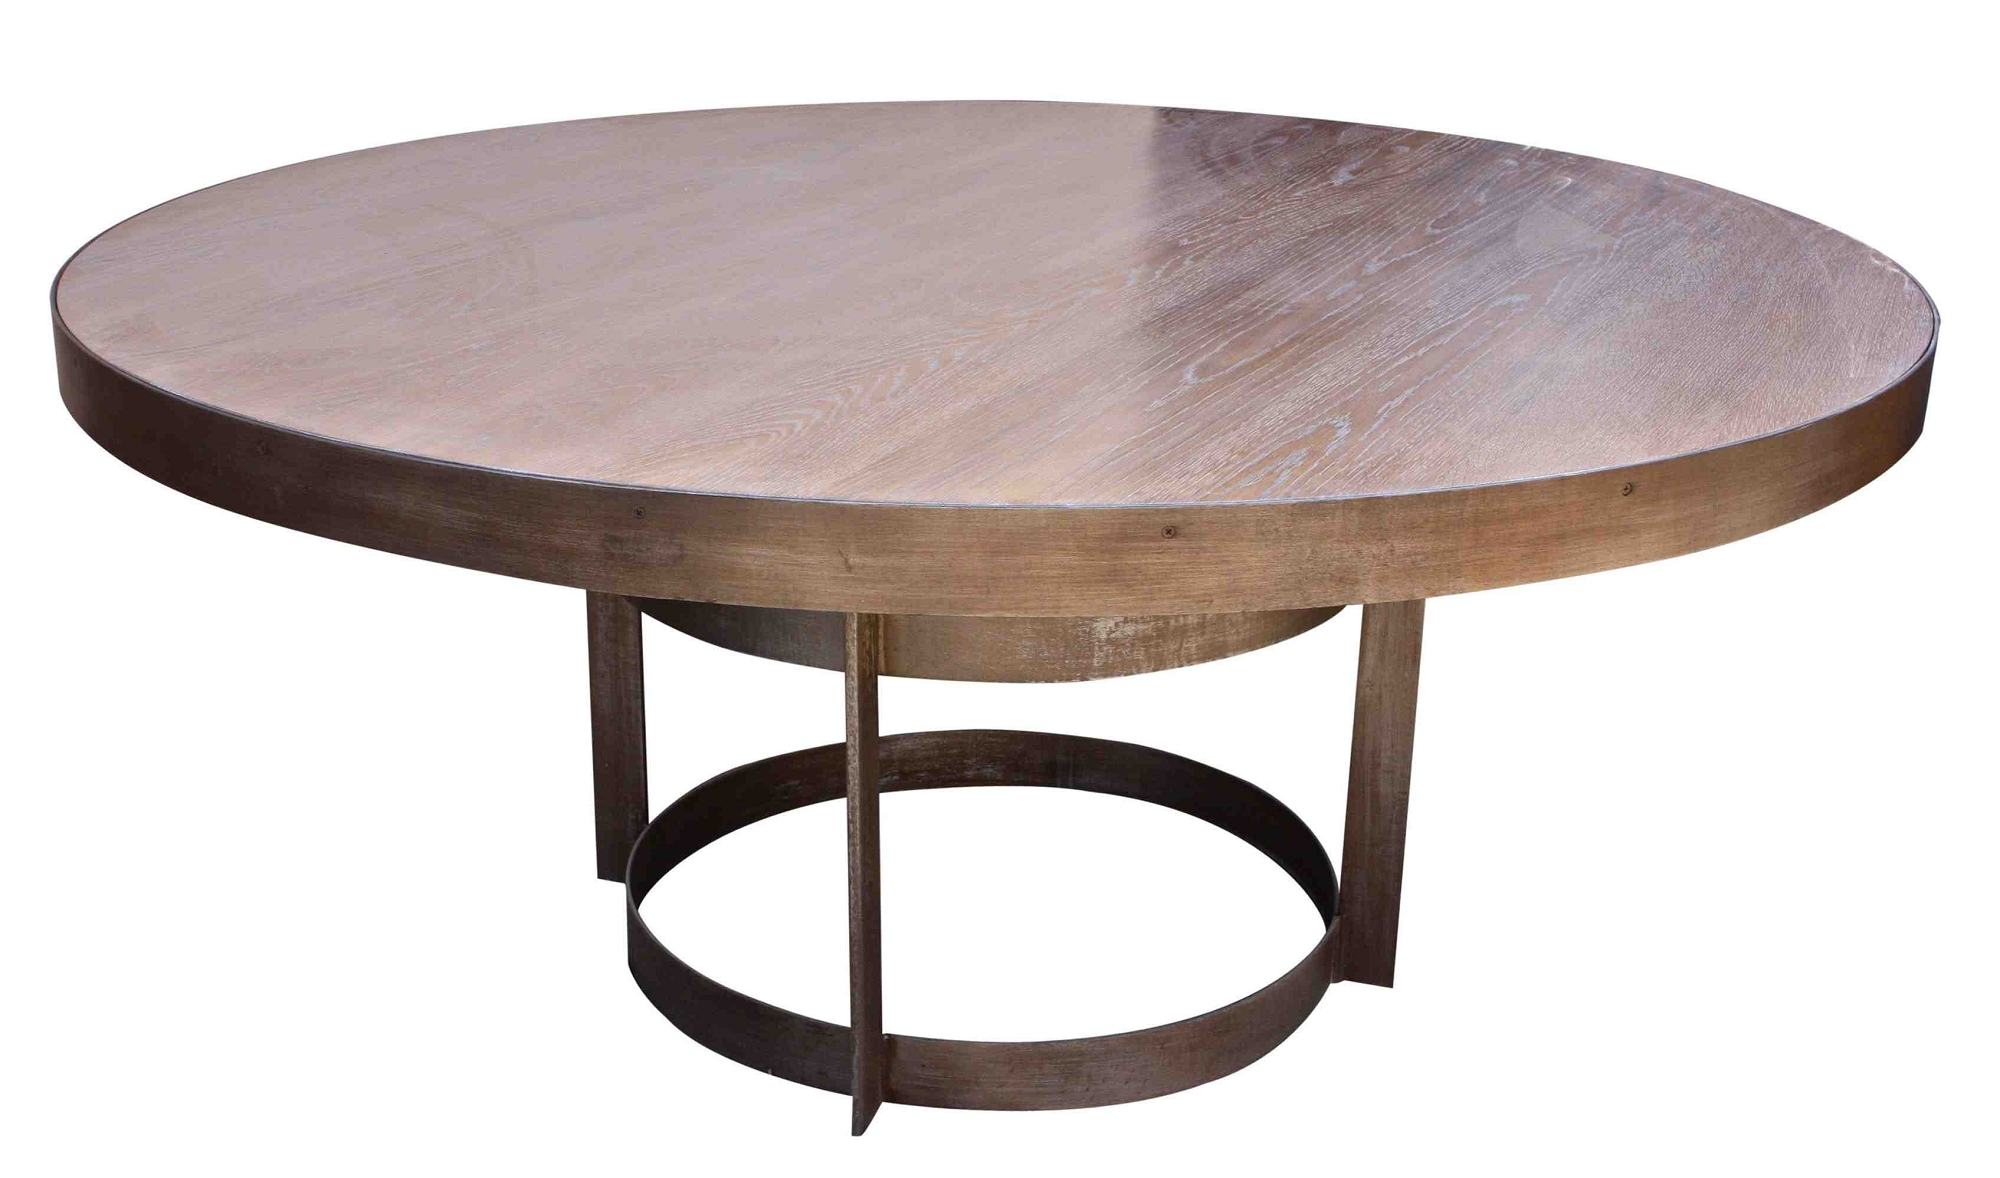 ideas collection dining tables unfinished wood pedestal table base round marble with inch accent piece pub set end storage narrow glass side patterned plastic tablecloths cement